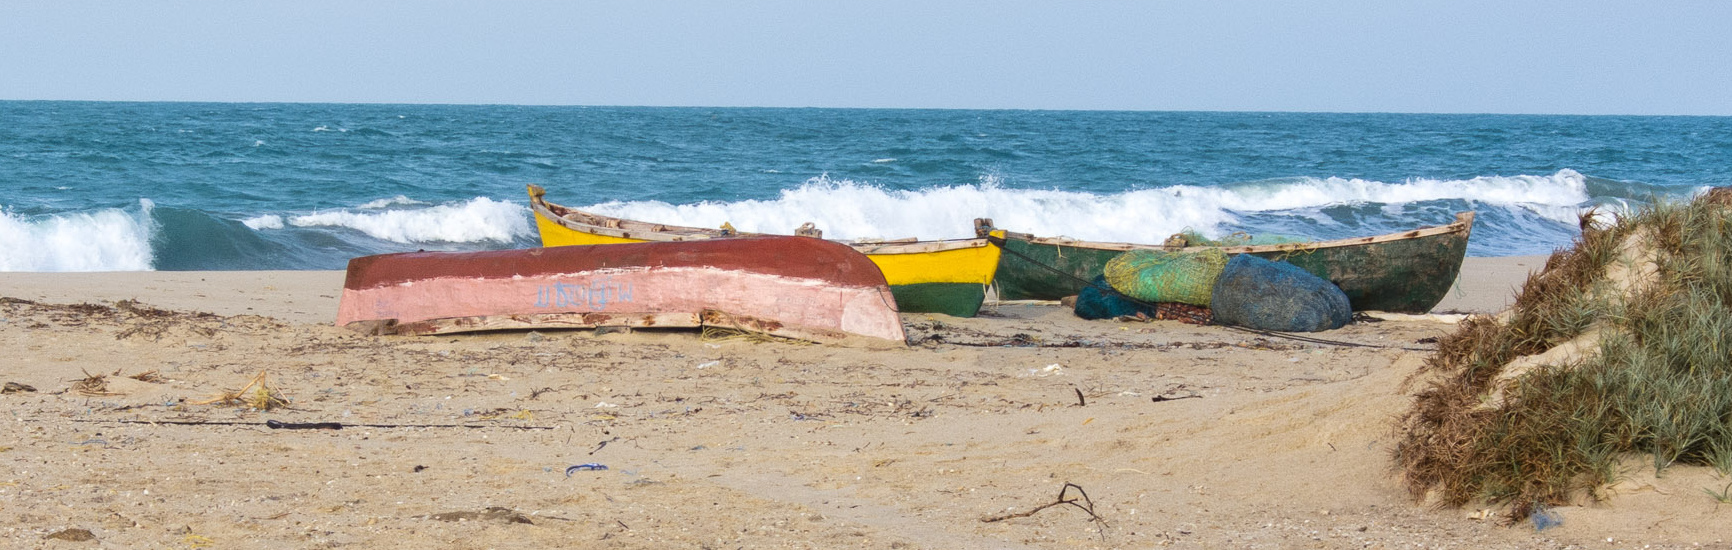 What the 45-Day Annual Fishing Ban in Tamil Nadu Means for Fisheries Conservation